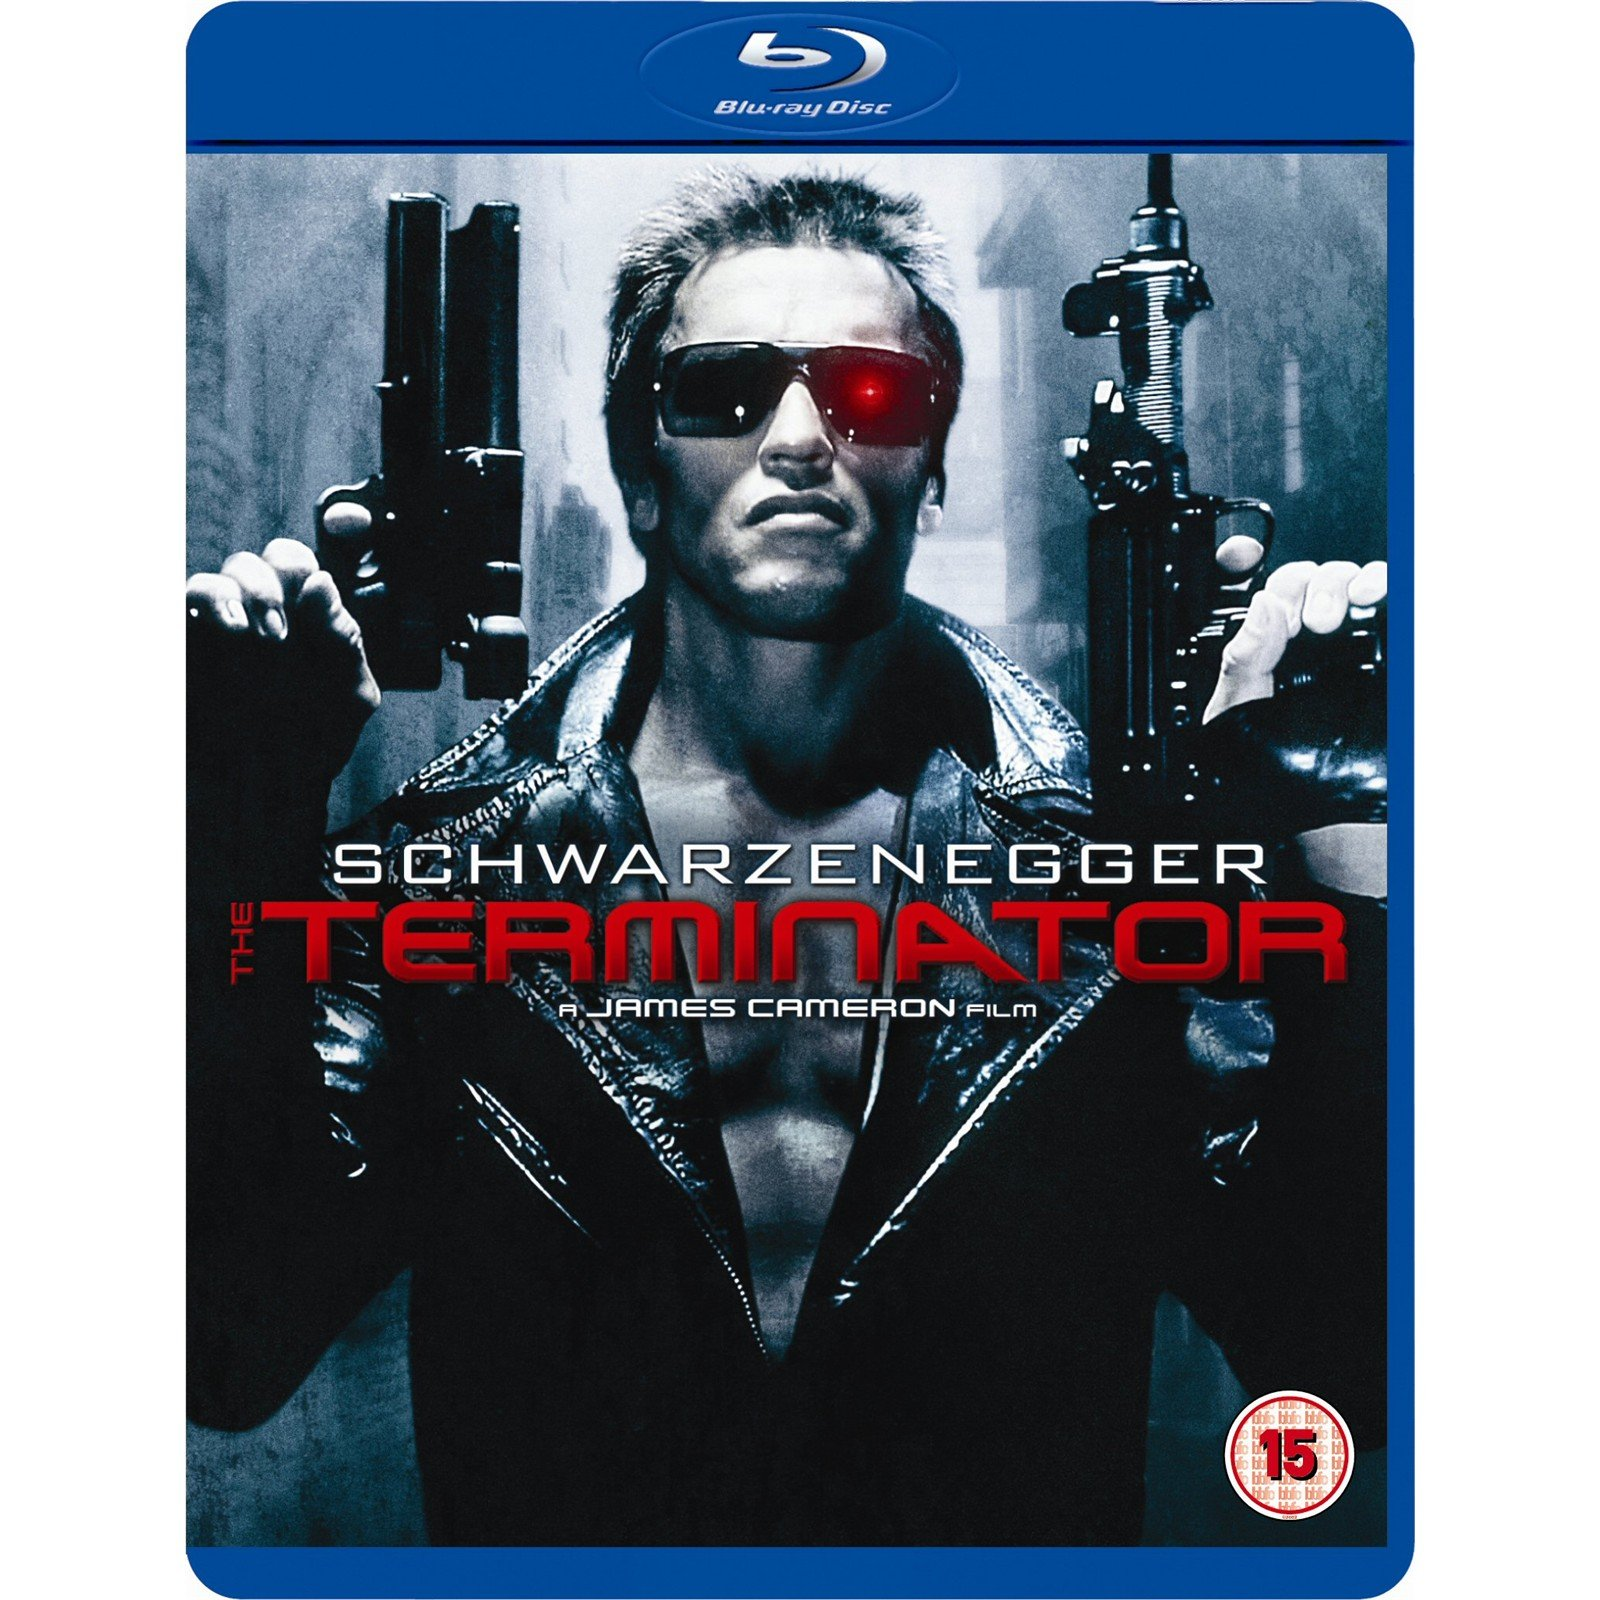 The Terminator (Remastered Edition) Blu-Ray Review